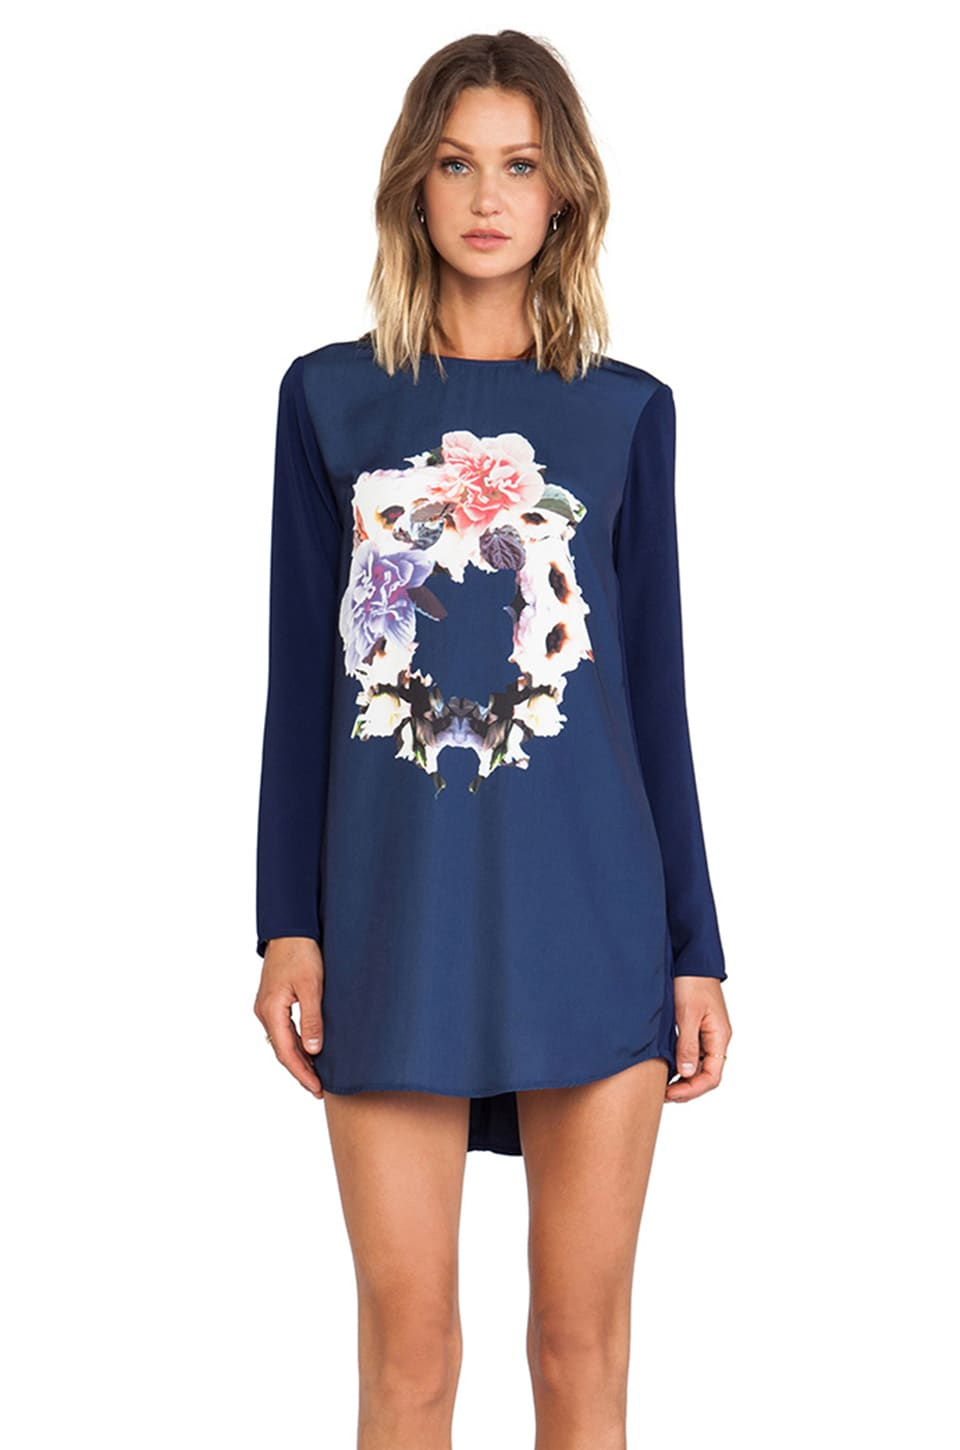 Finders Keepers Evil Friends Long Sleeve Dress in Navy Ring of Roses Print